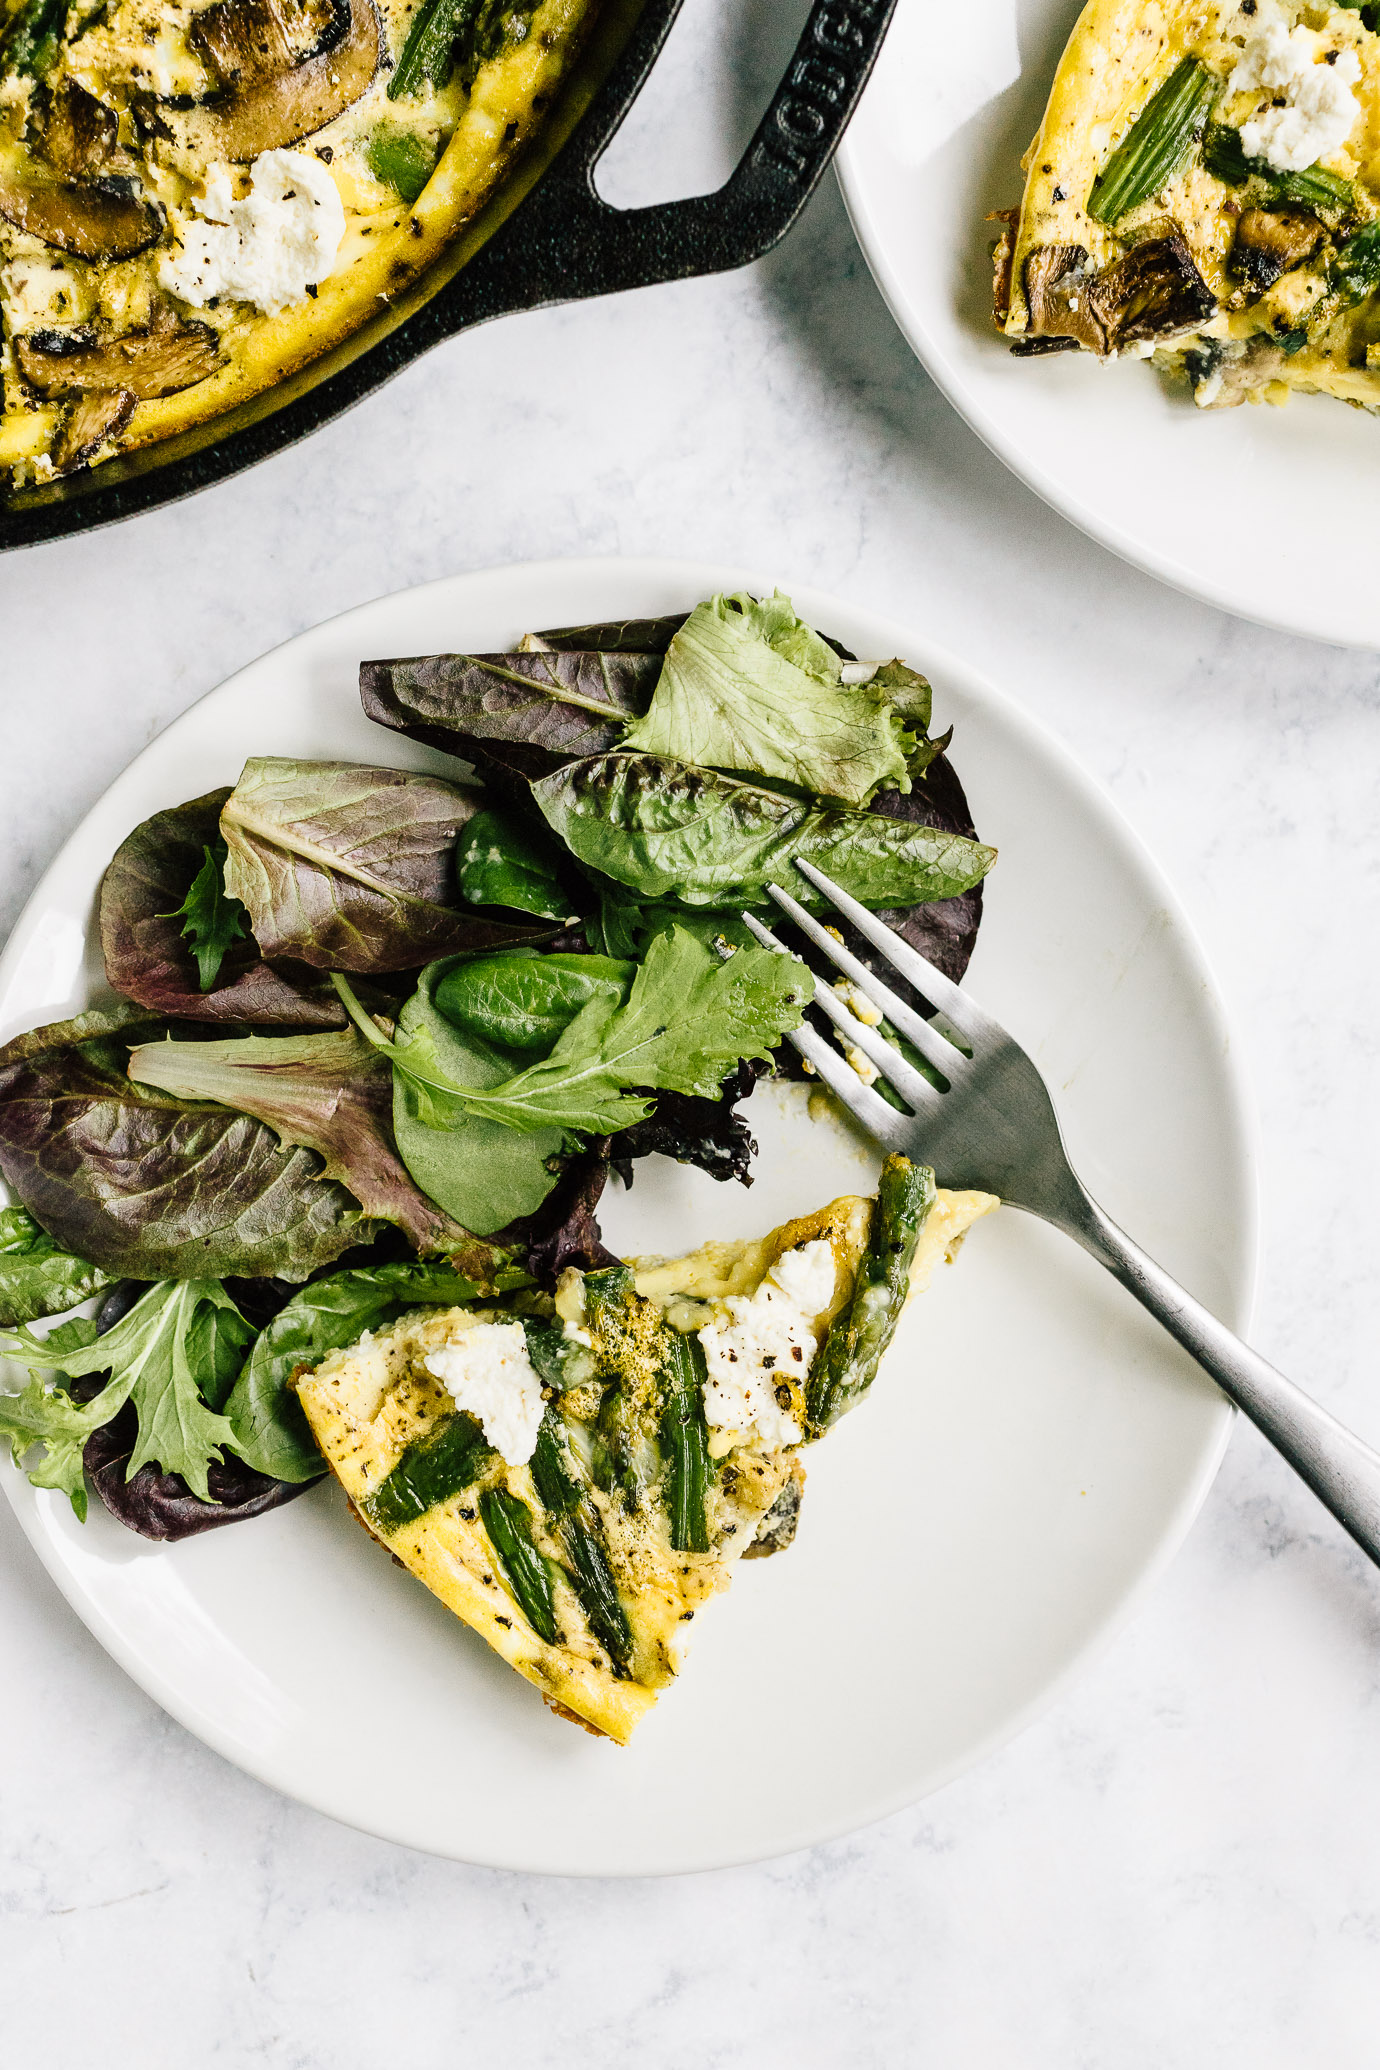 Slice of asparagus mushroom frittata with green side salad